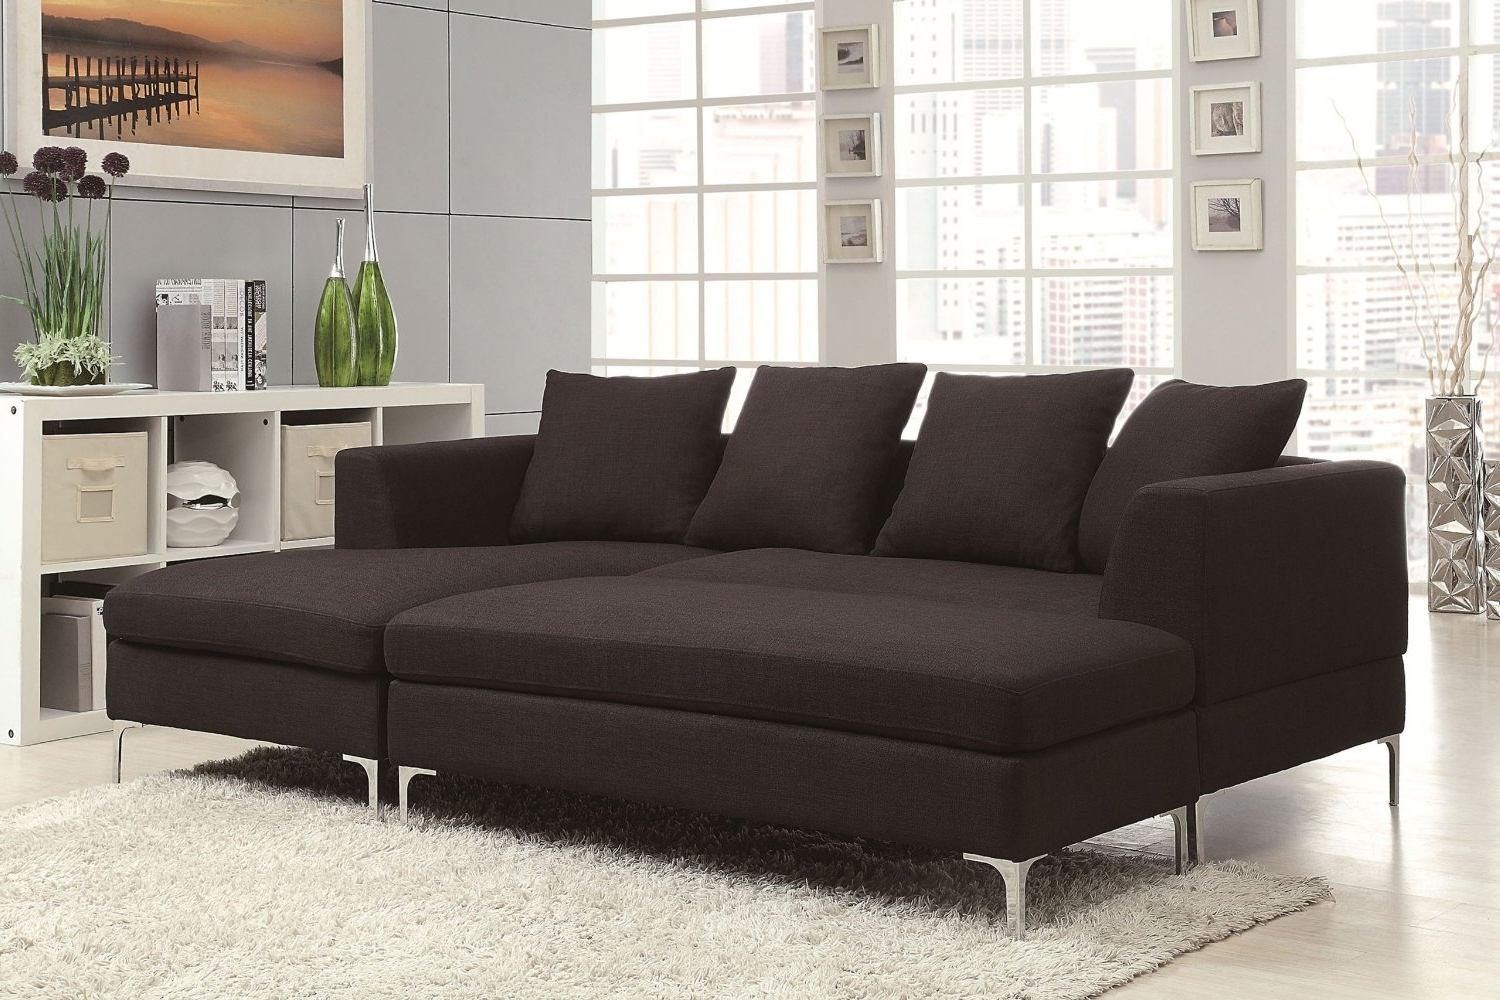 Sectional Chaise Sofa – Home And Textiles Inside Most Current Sectional Sofas With Chaise Lounge (View 9 of 15)